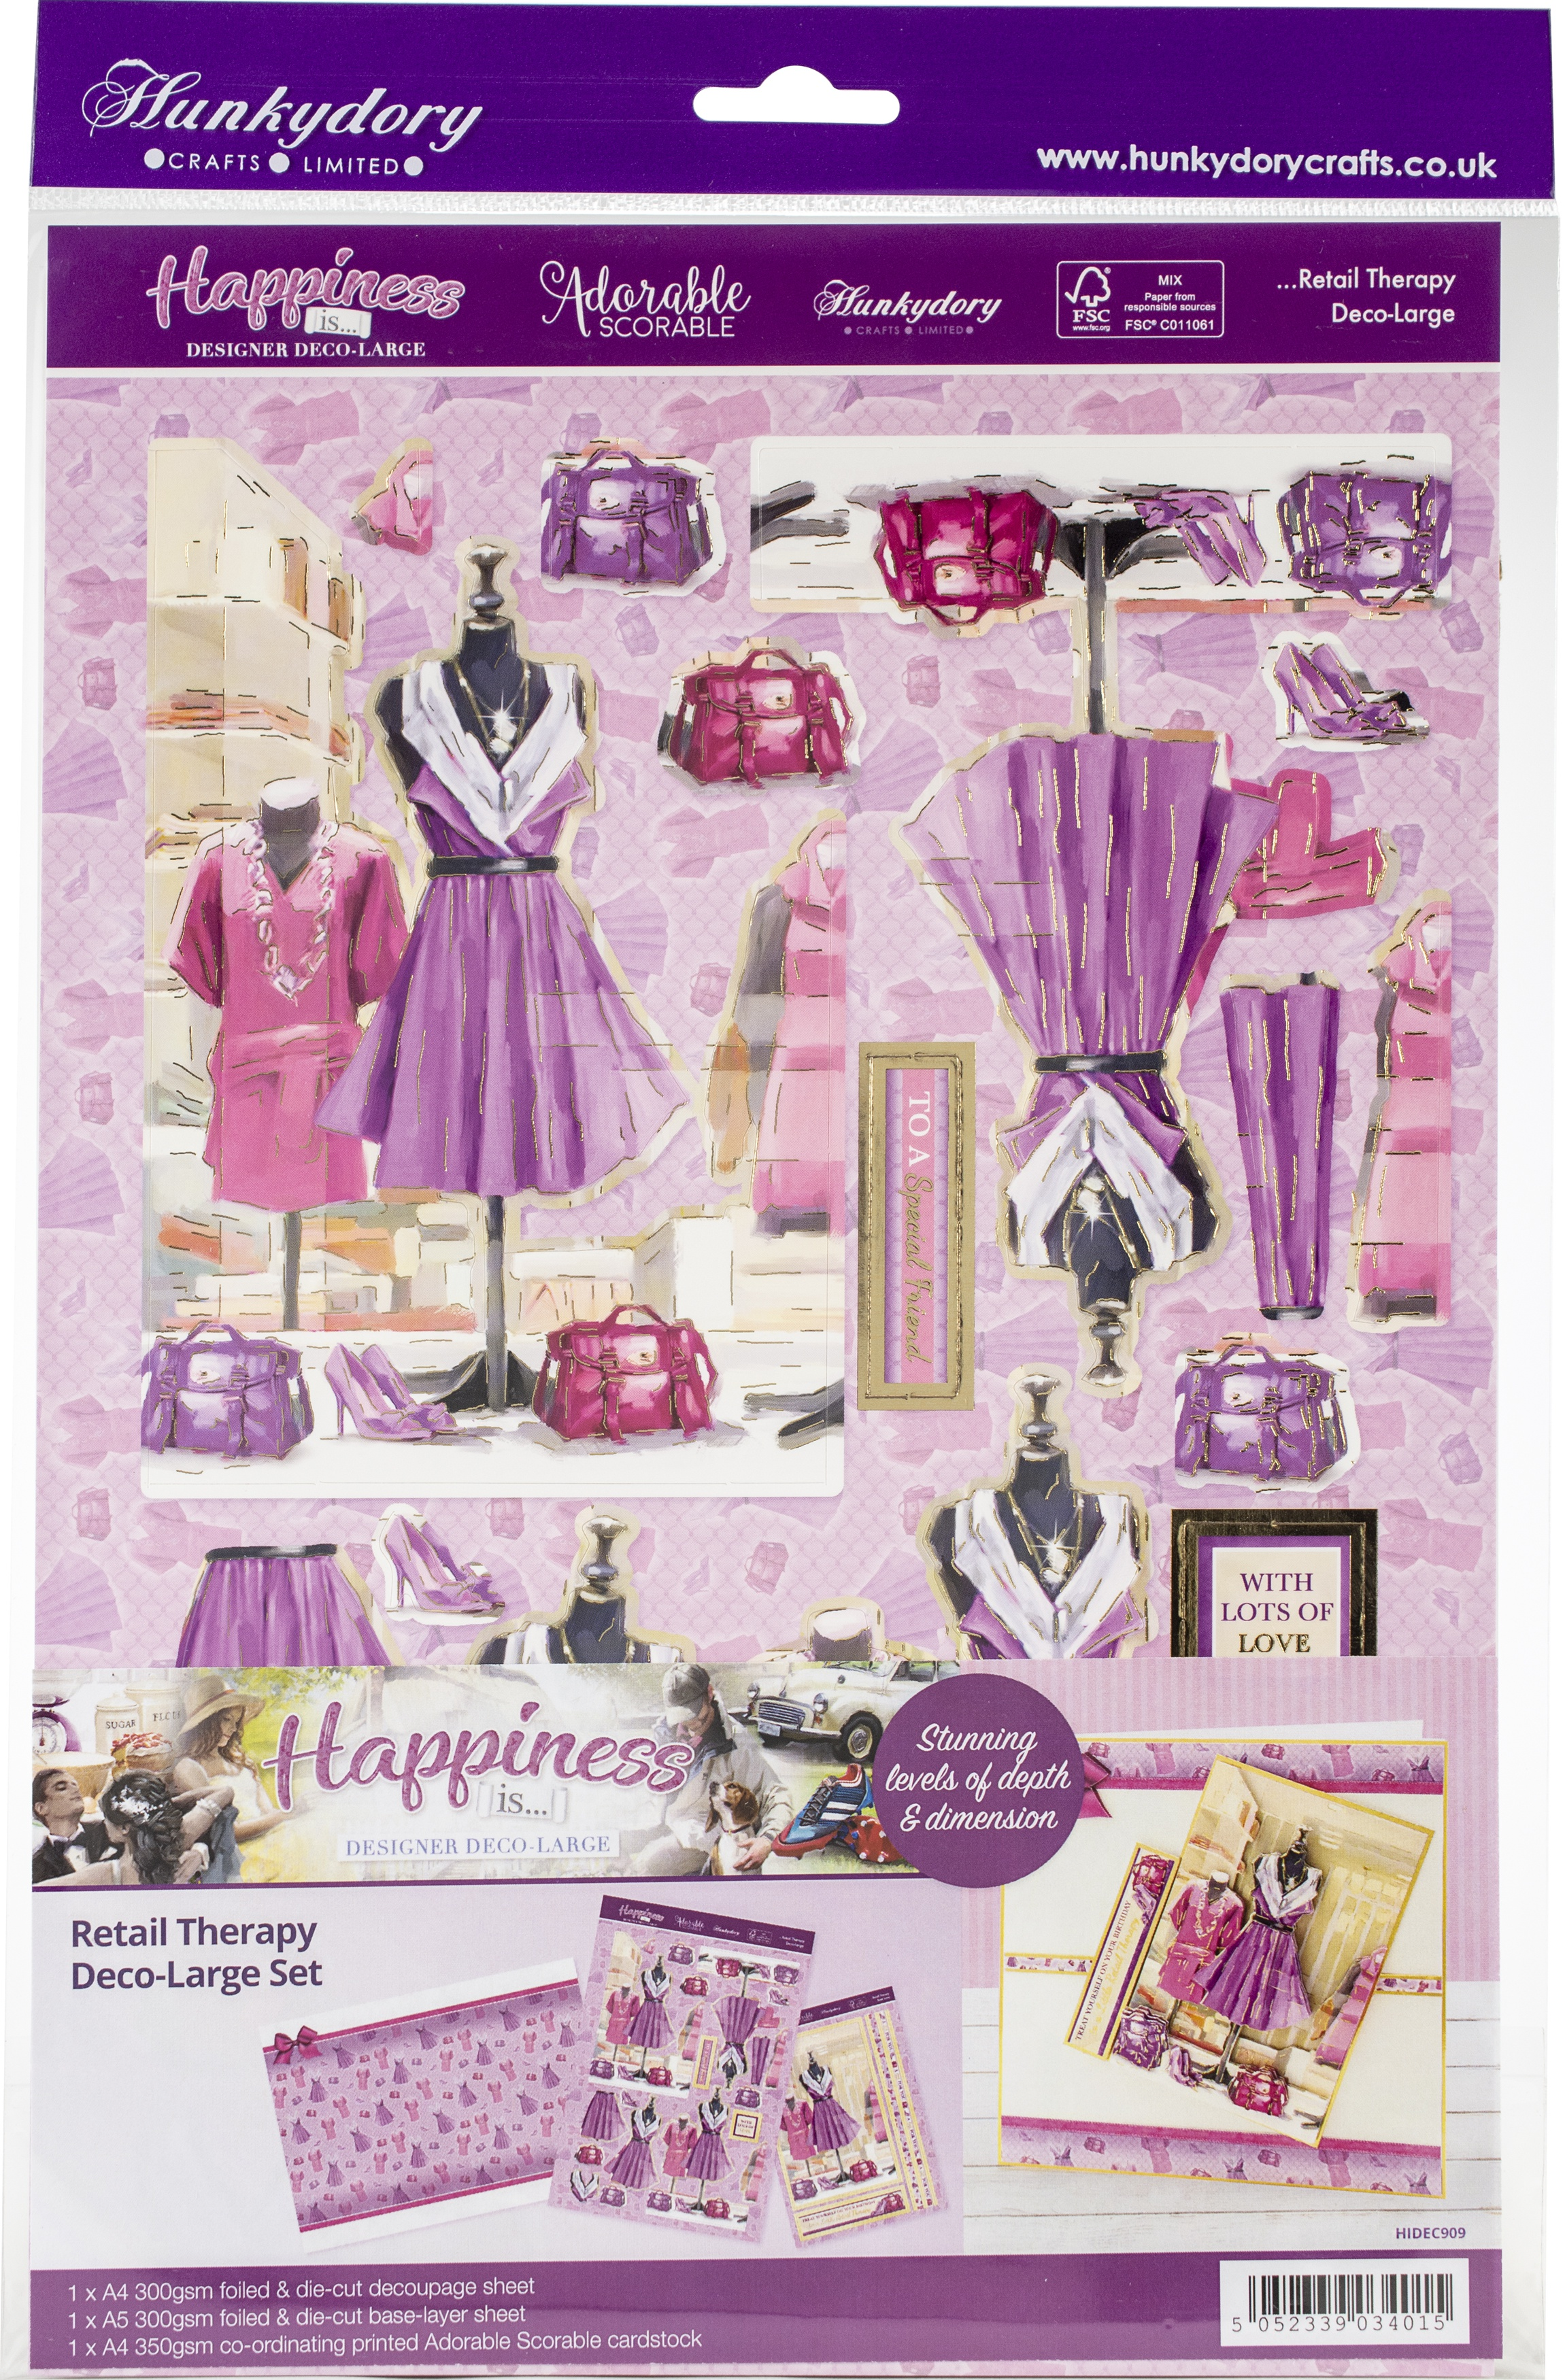 Hunkydory Happiness Is... A4 Decoupage Large Set-Retail Therapy